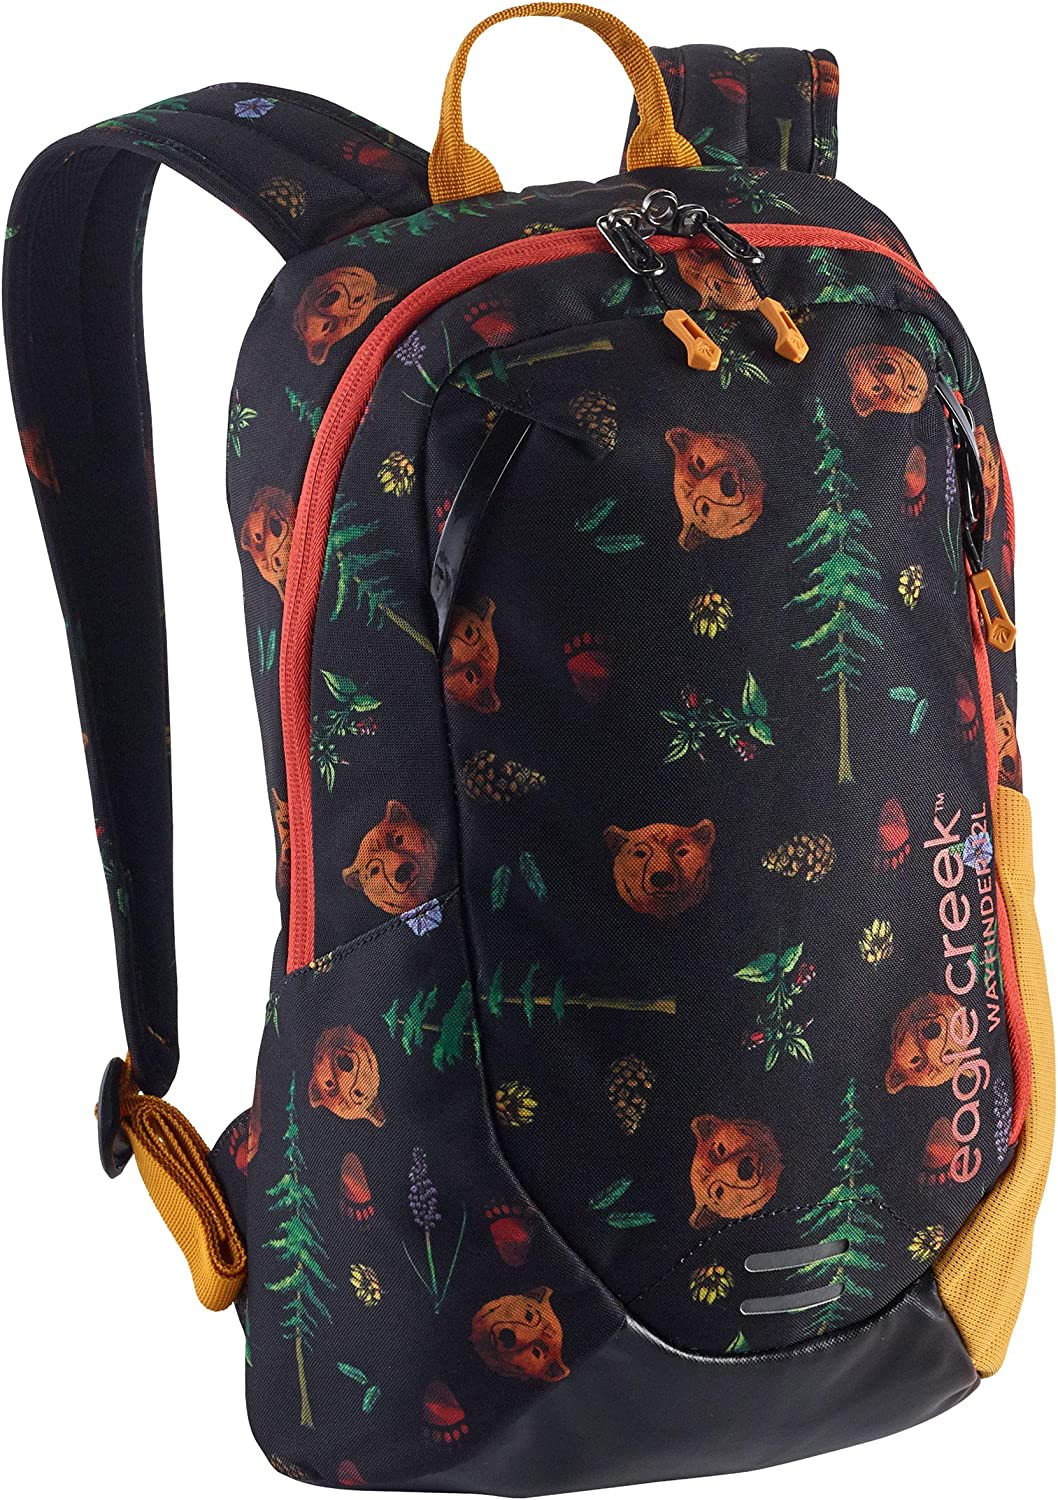 Eagle Creek Wayfinder Backpack Mini, Golden State Print, 12L, One Size